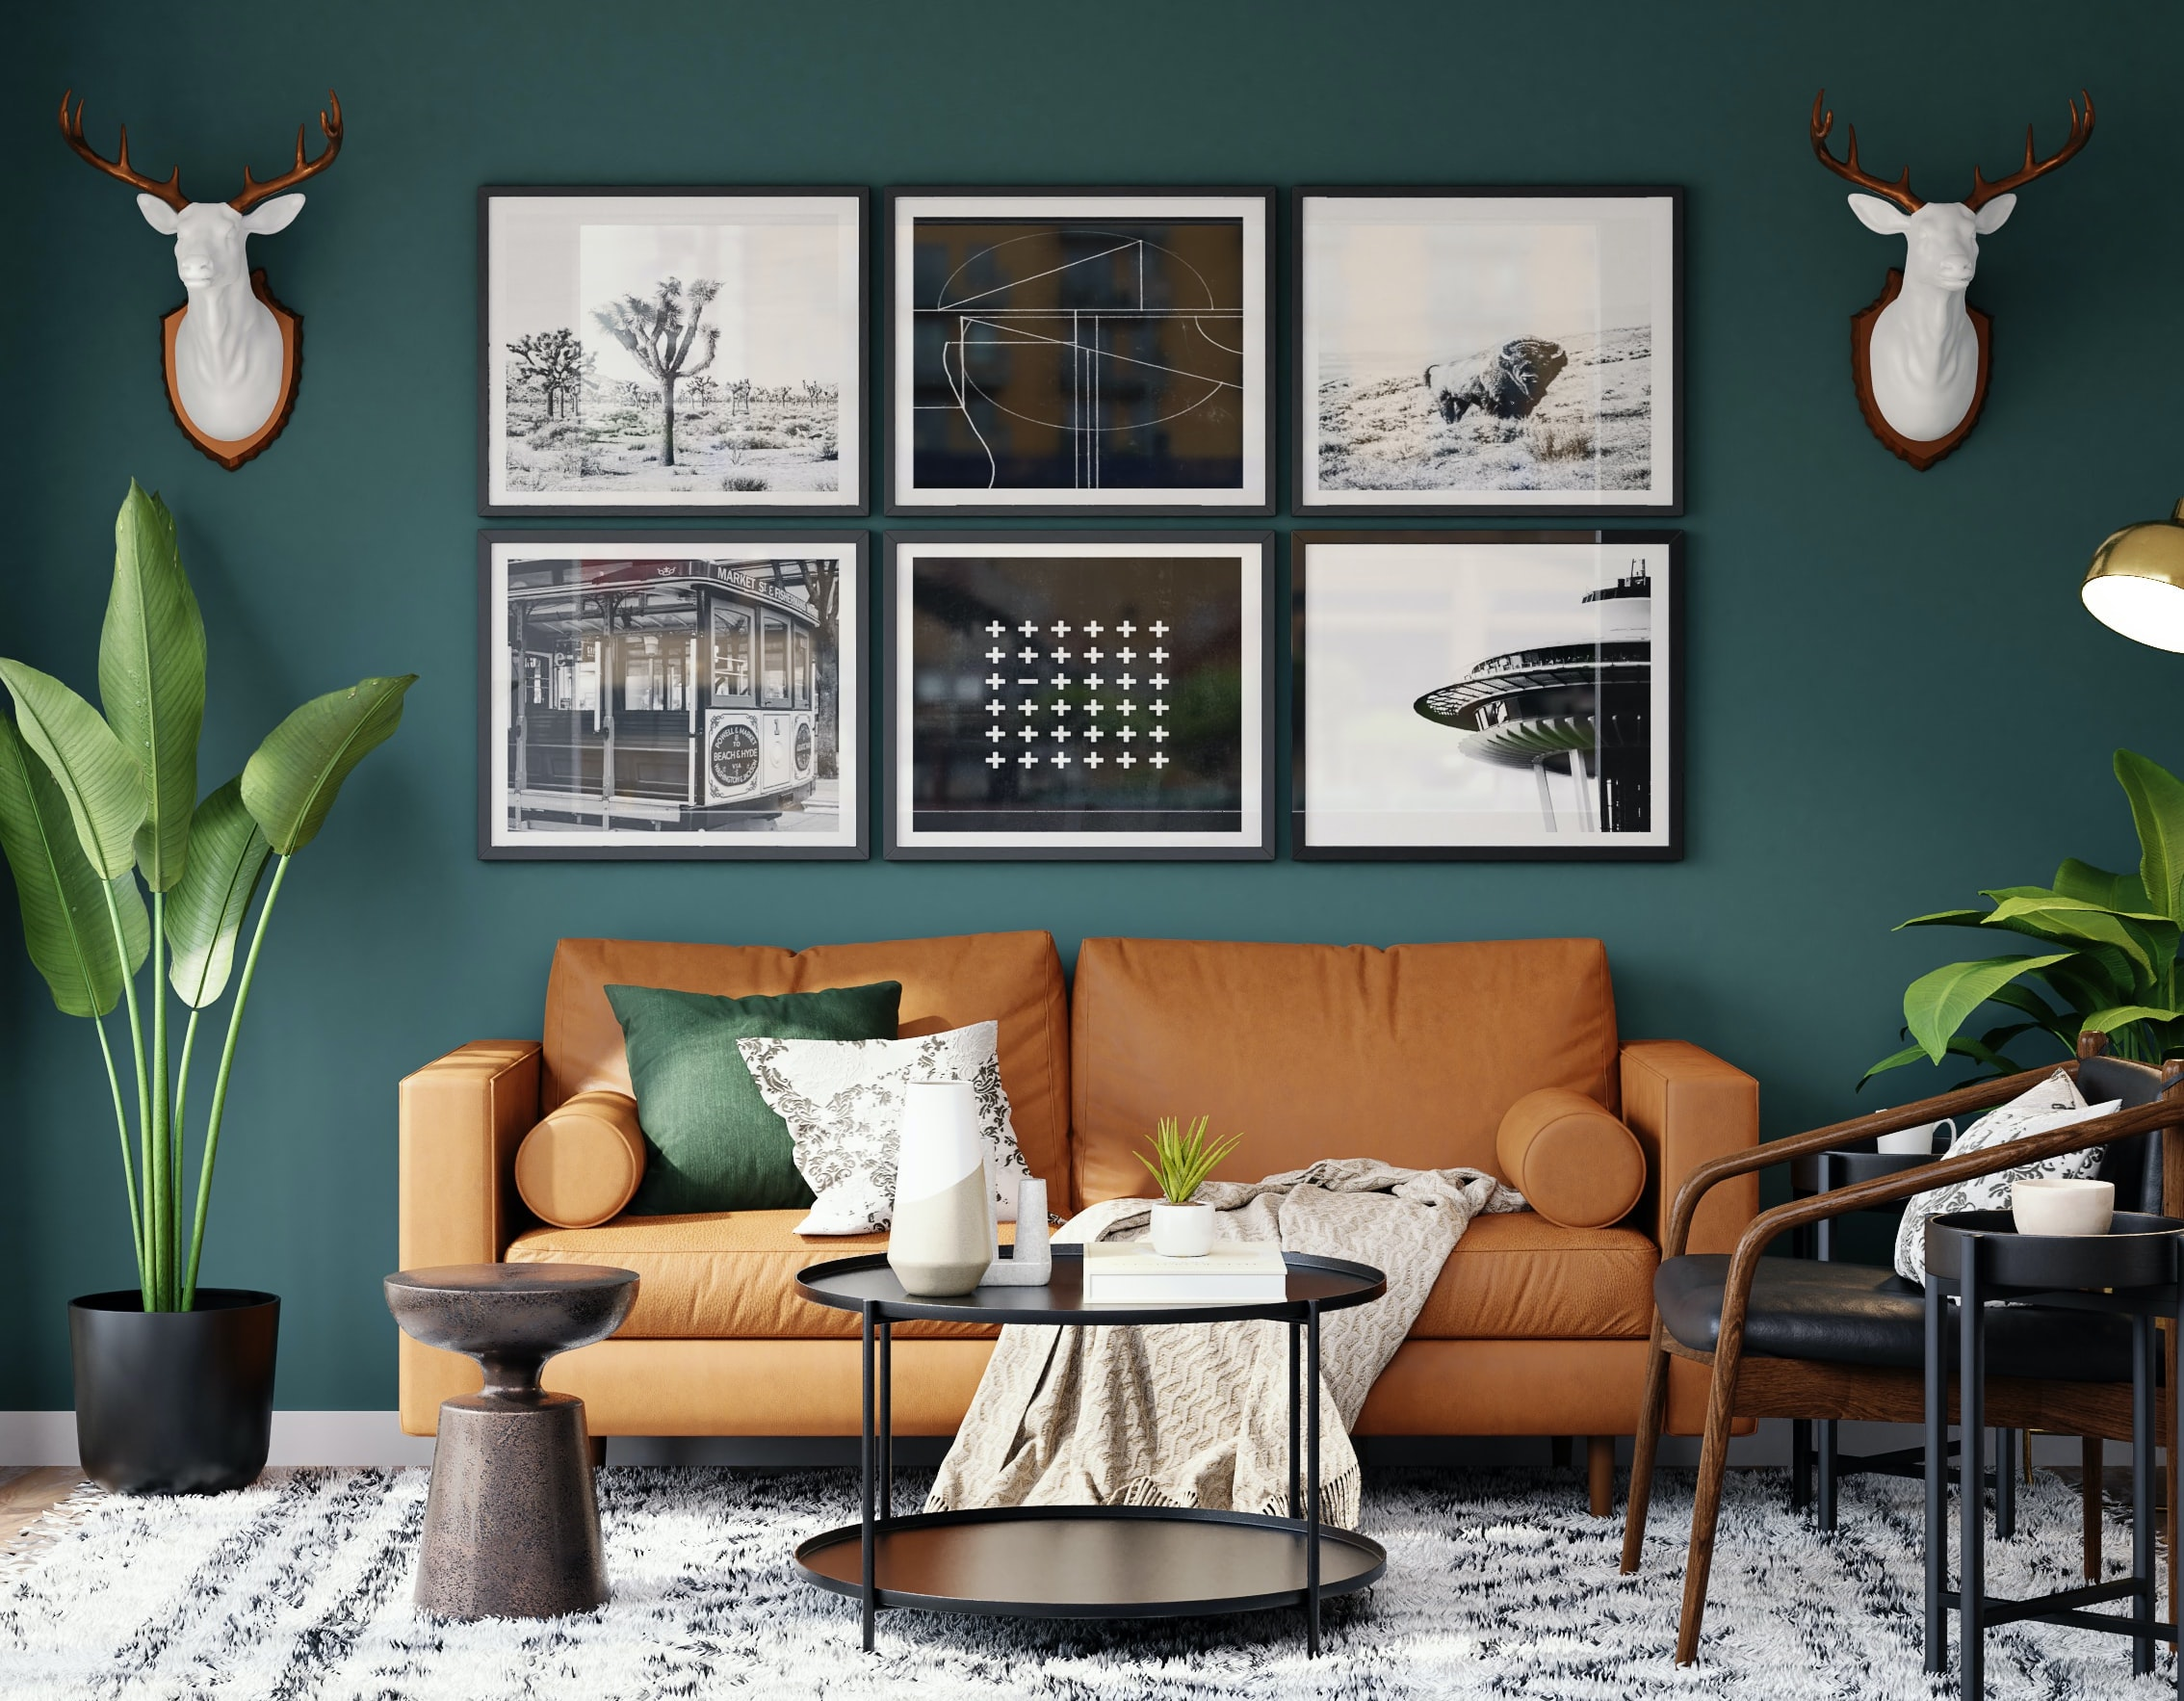 20 home decor Instagram accounts to follow for inspiration